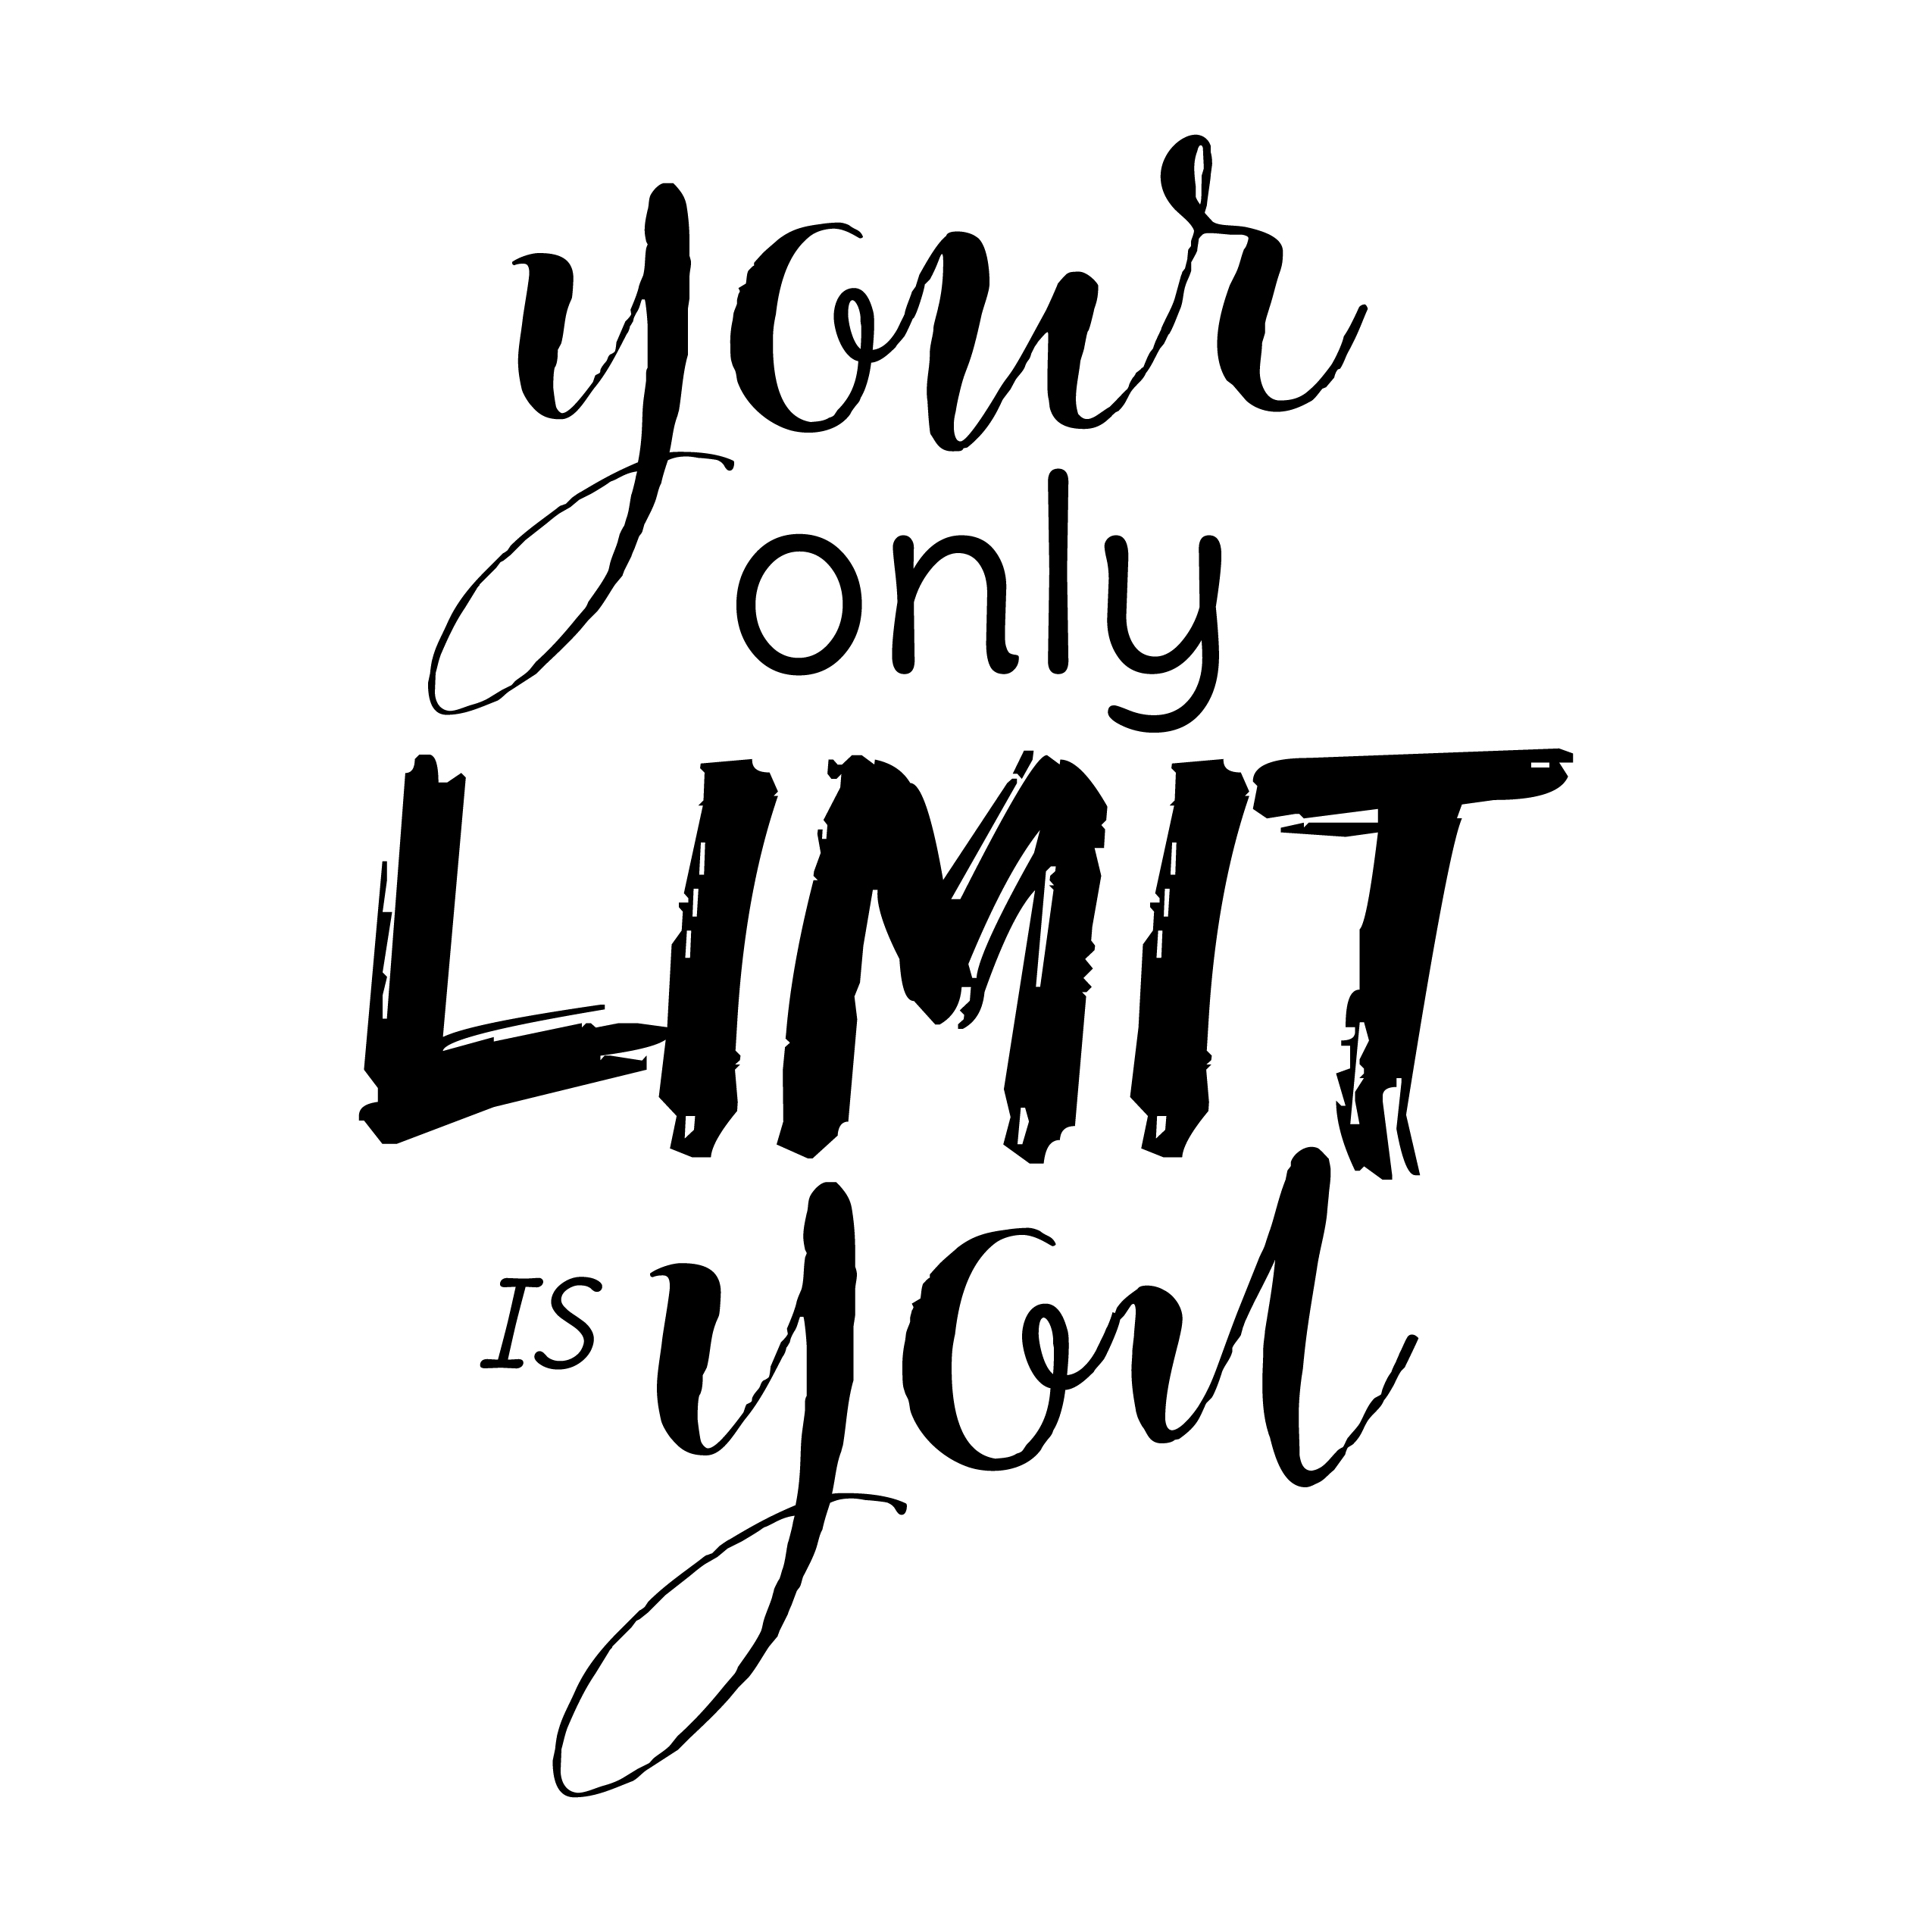 [Image] Your only limit